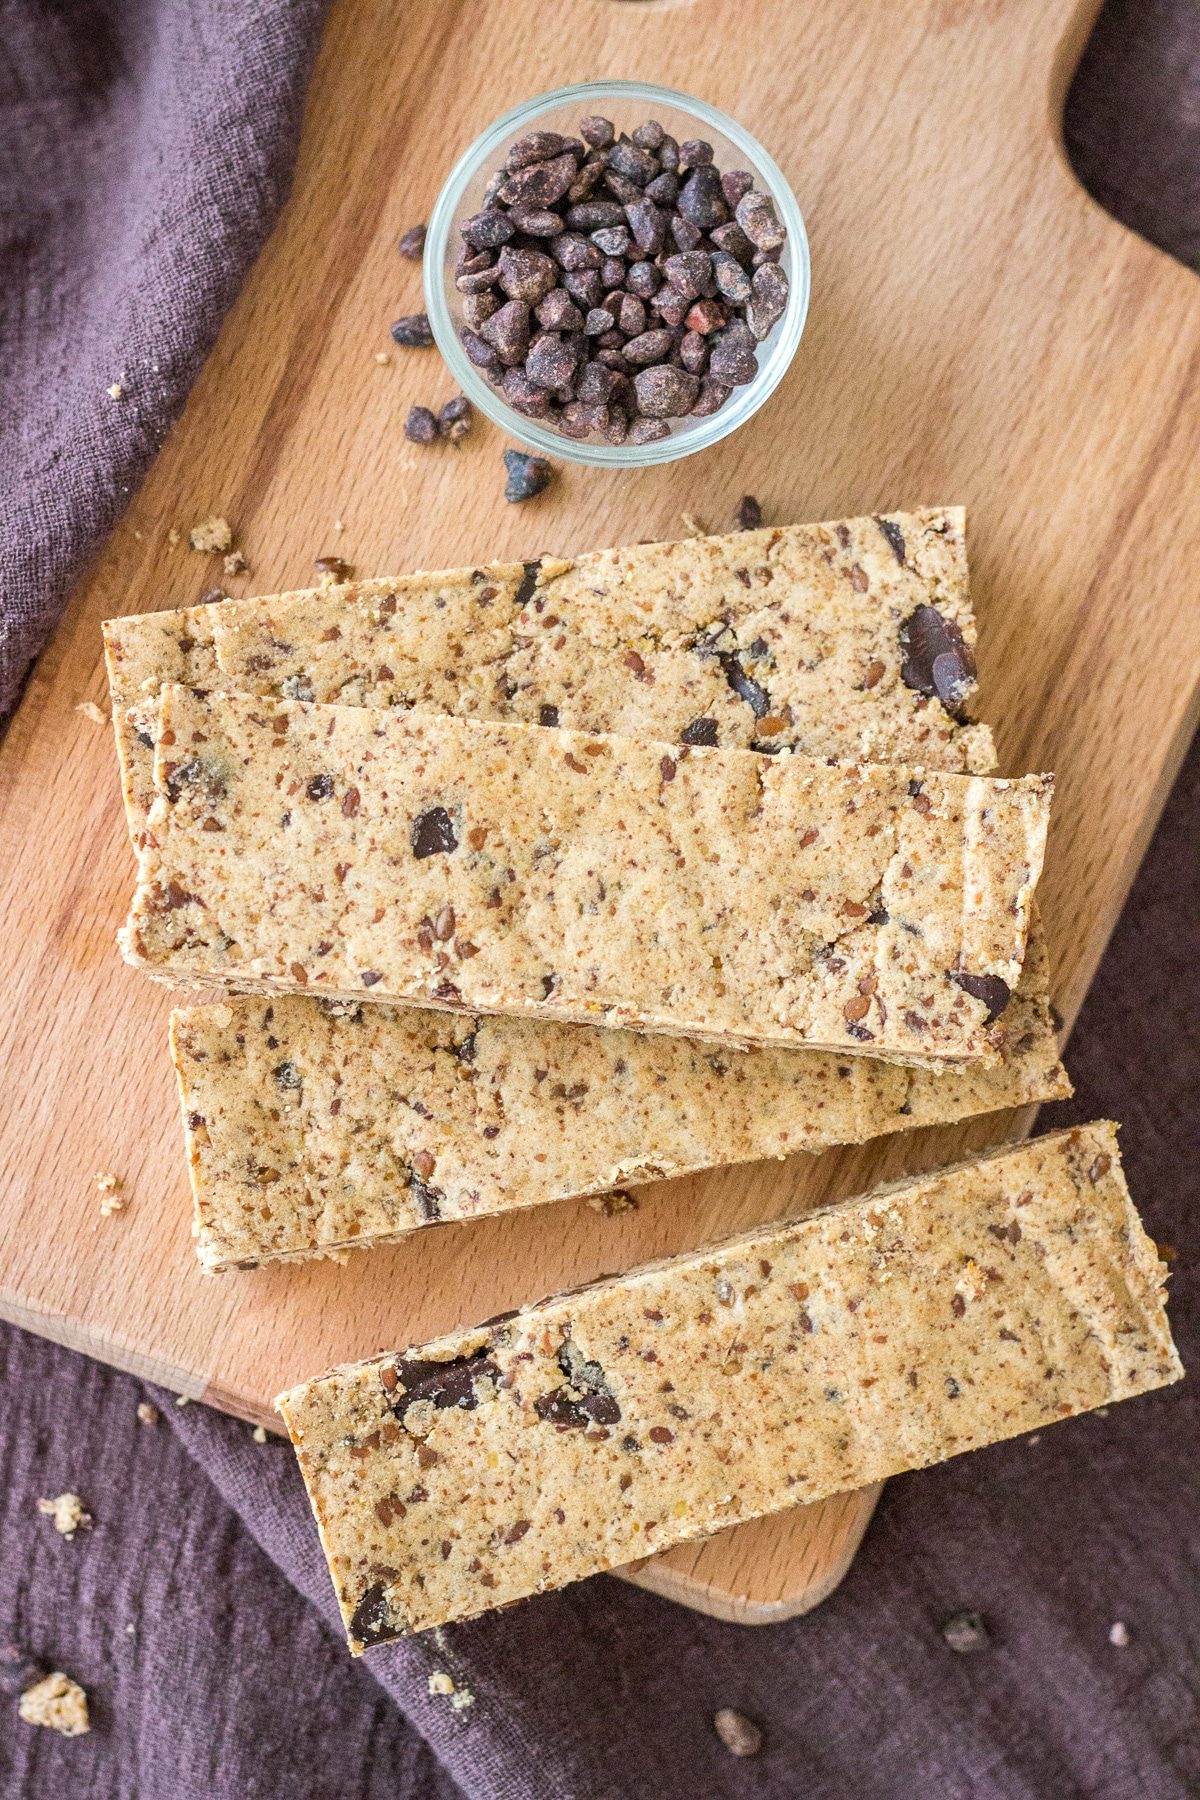 Upper view of a Cookie Dough Protein Bars served on a wooden plate